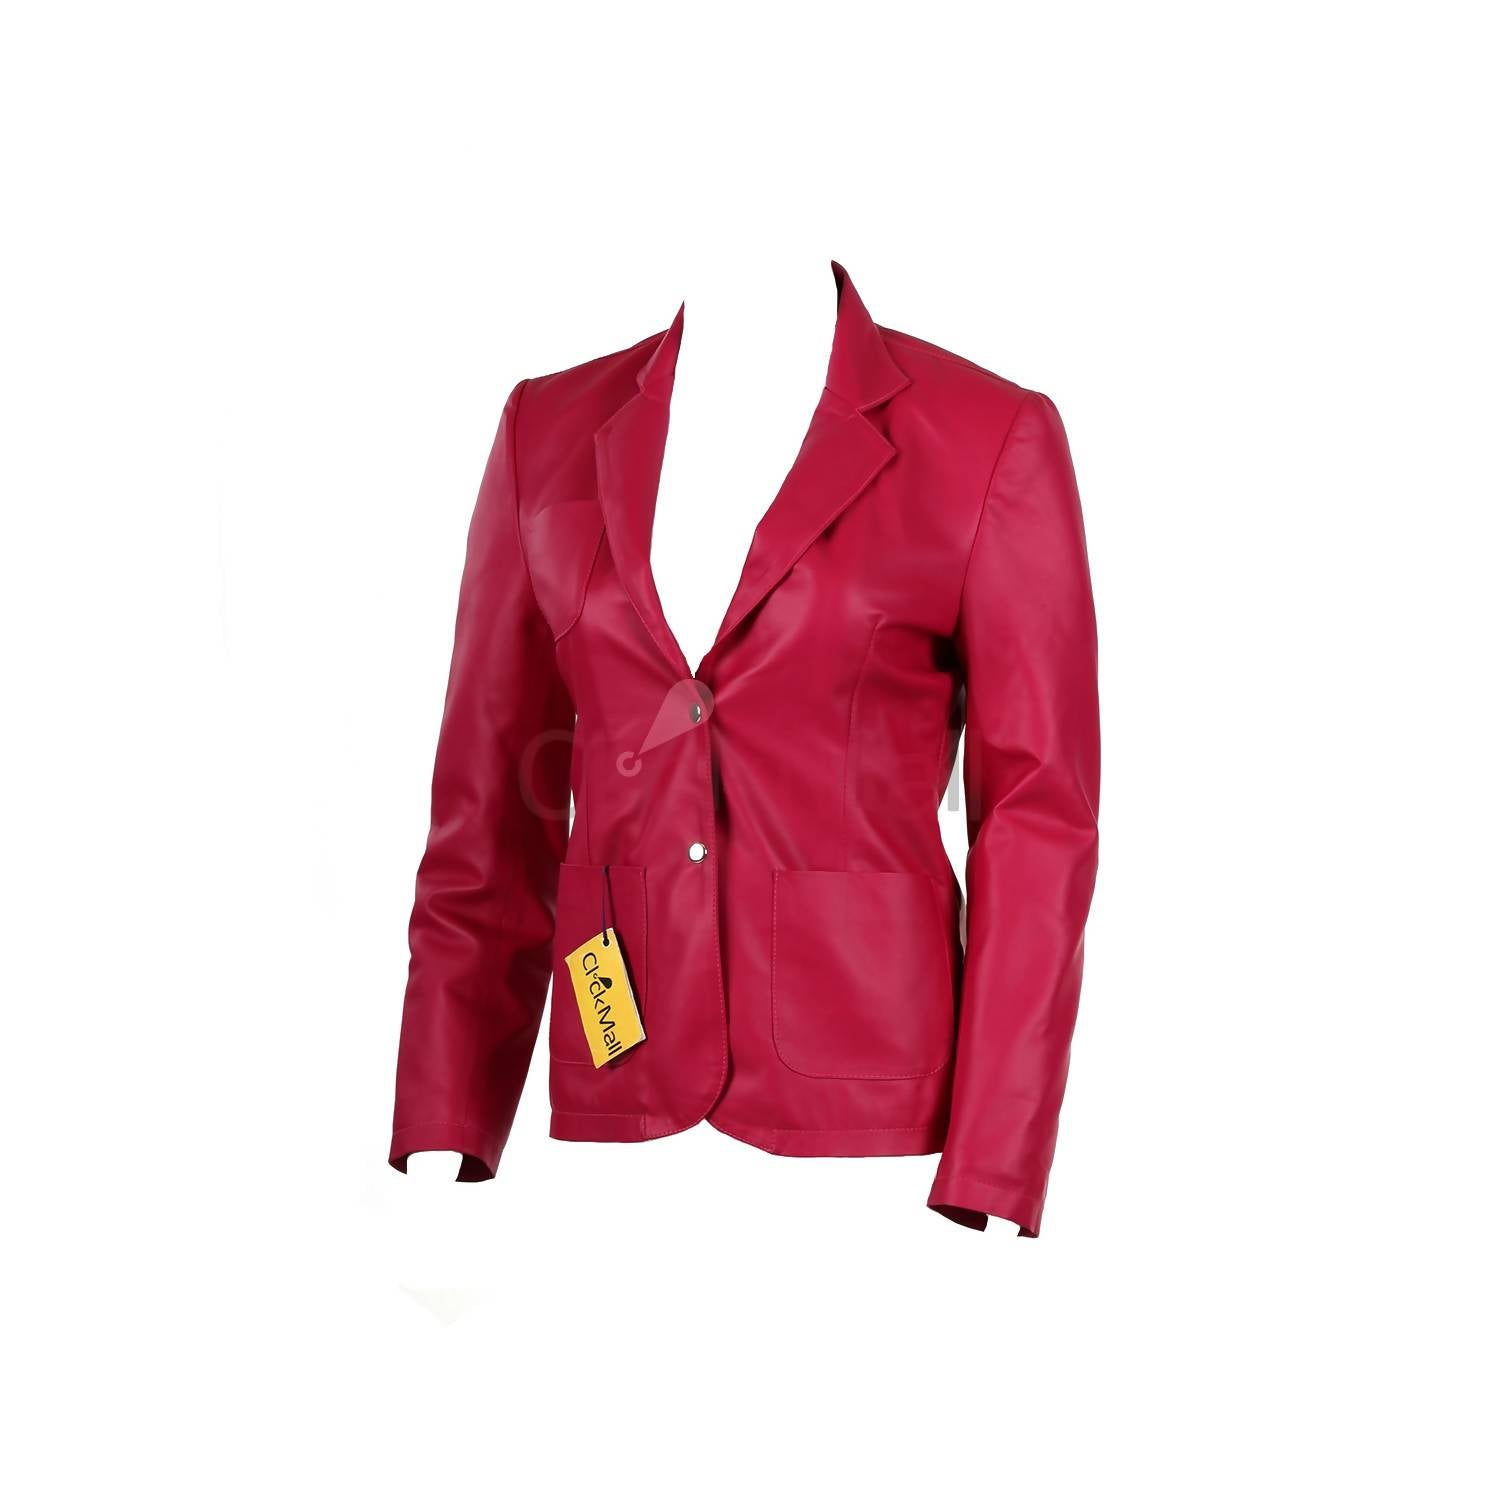 Megabrands Women's Slim Fit PU PINK Leather Coat MB - 99